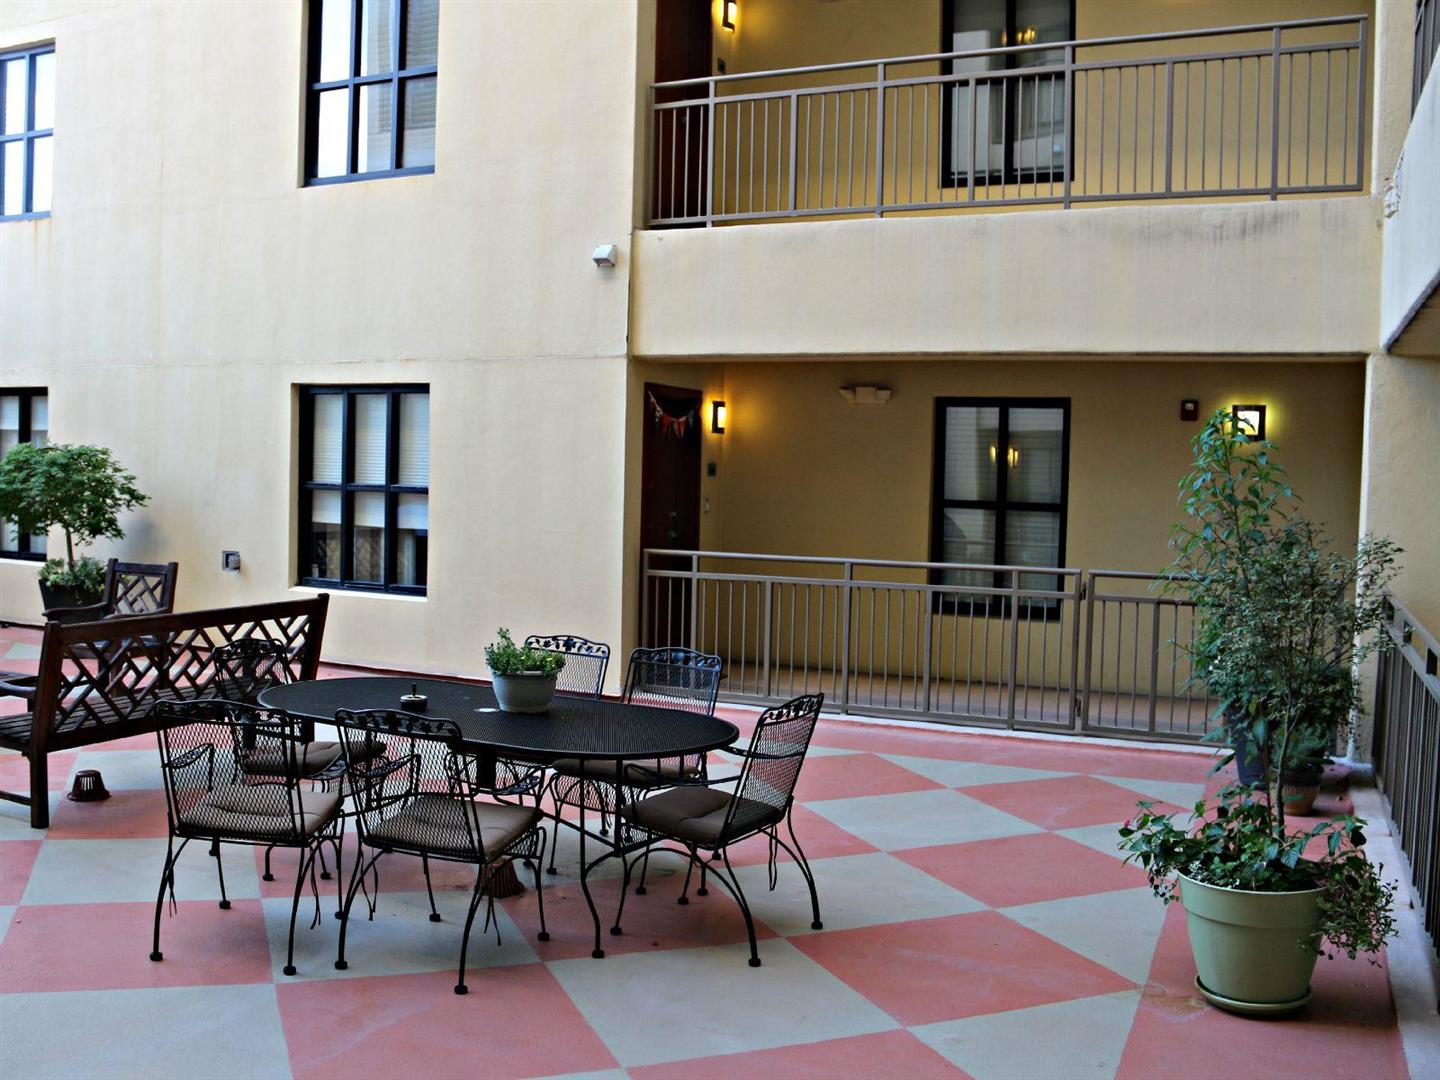 450JohnChurchillChaseCourtyard.jpg